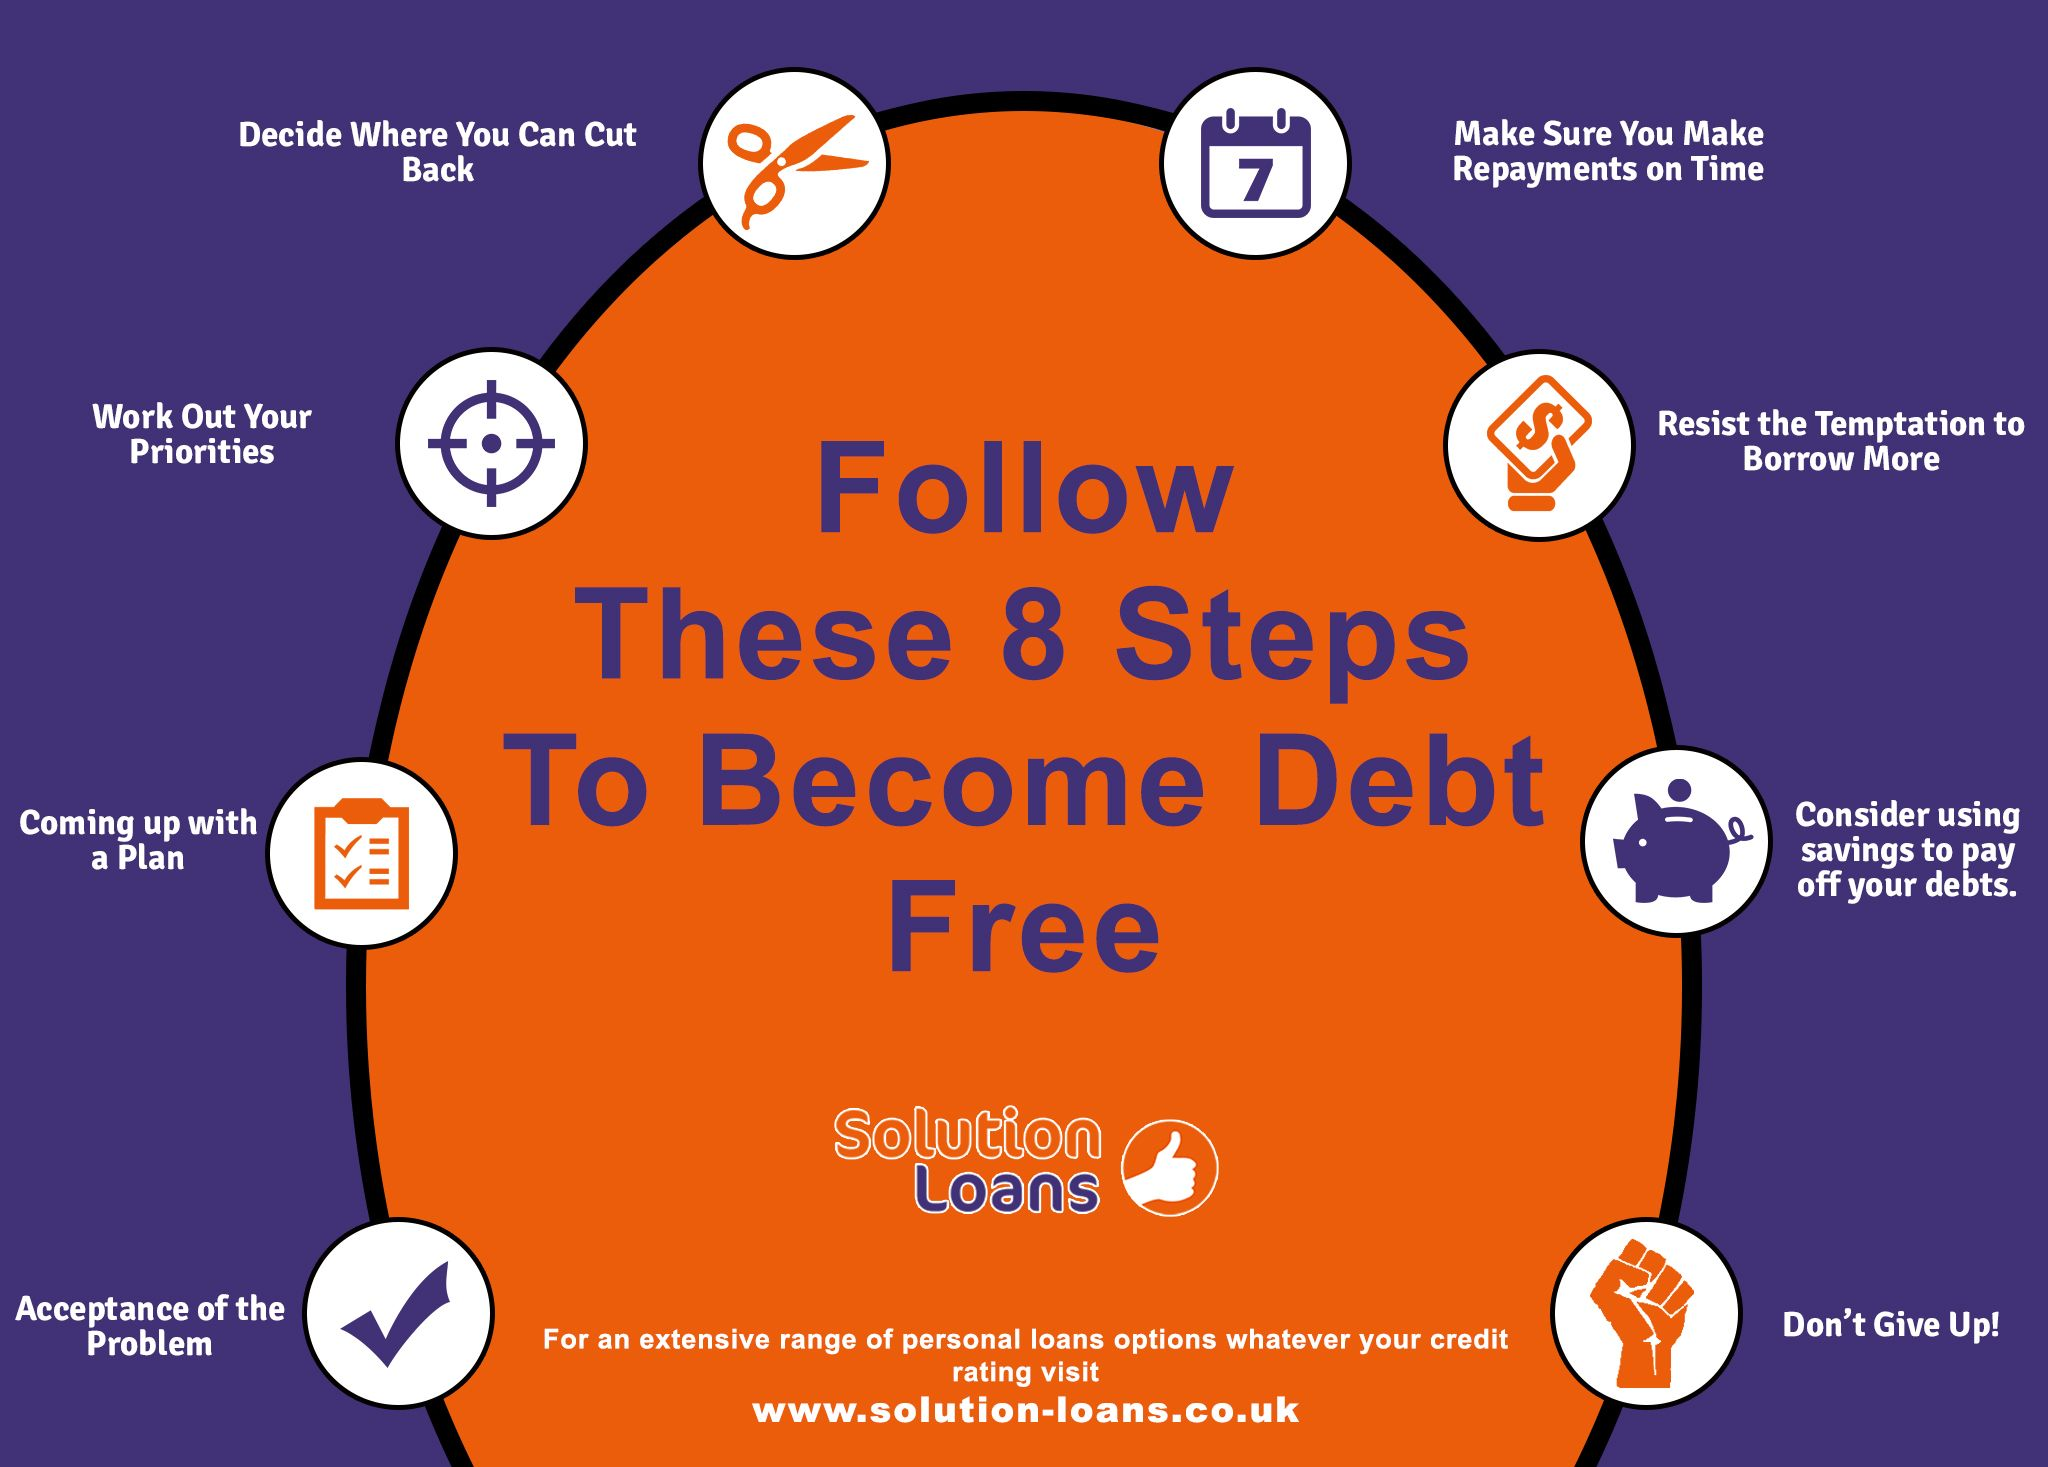 Repaying debt does not have to be the mountain to climb that it often seems. Follow these steps to see how